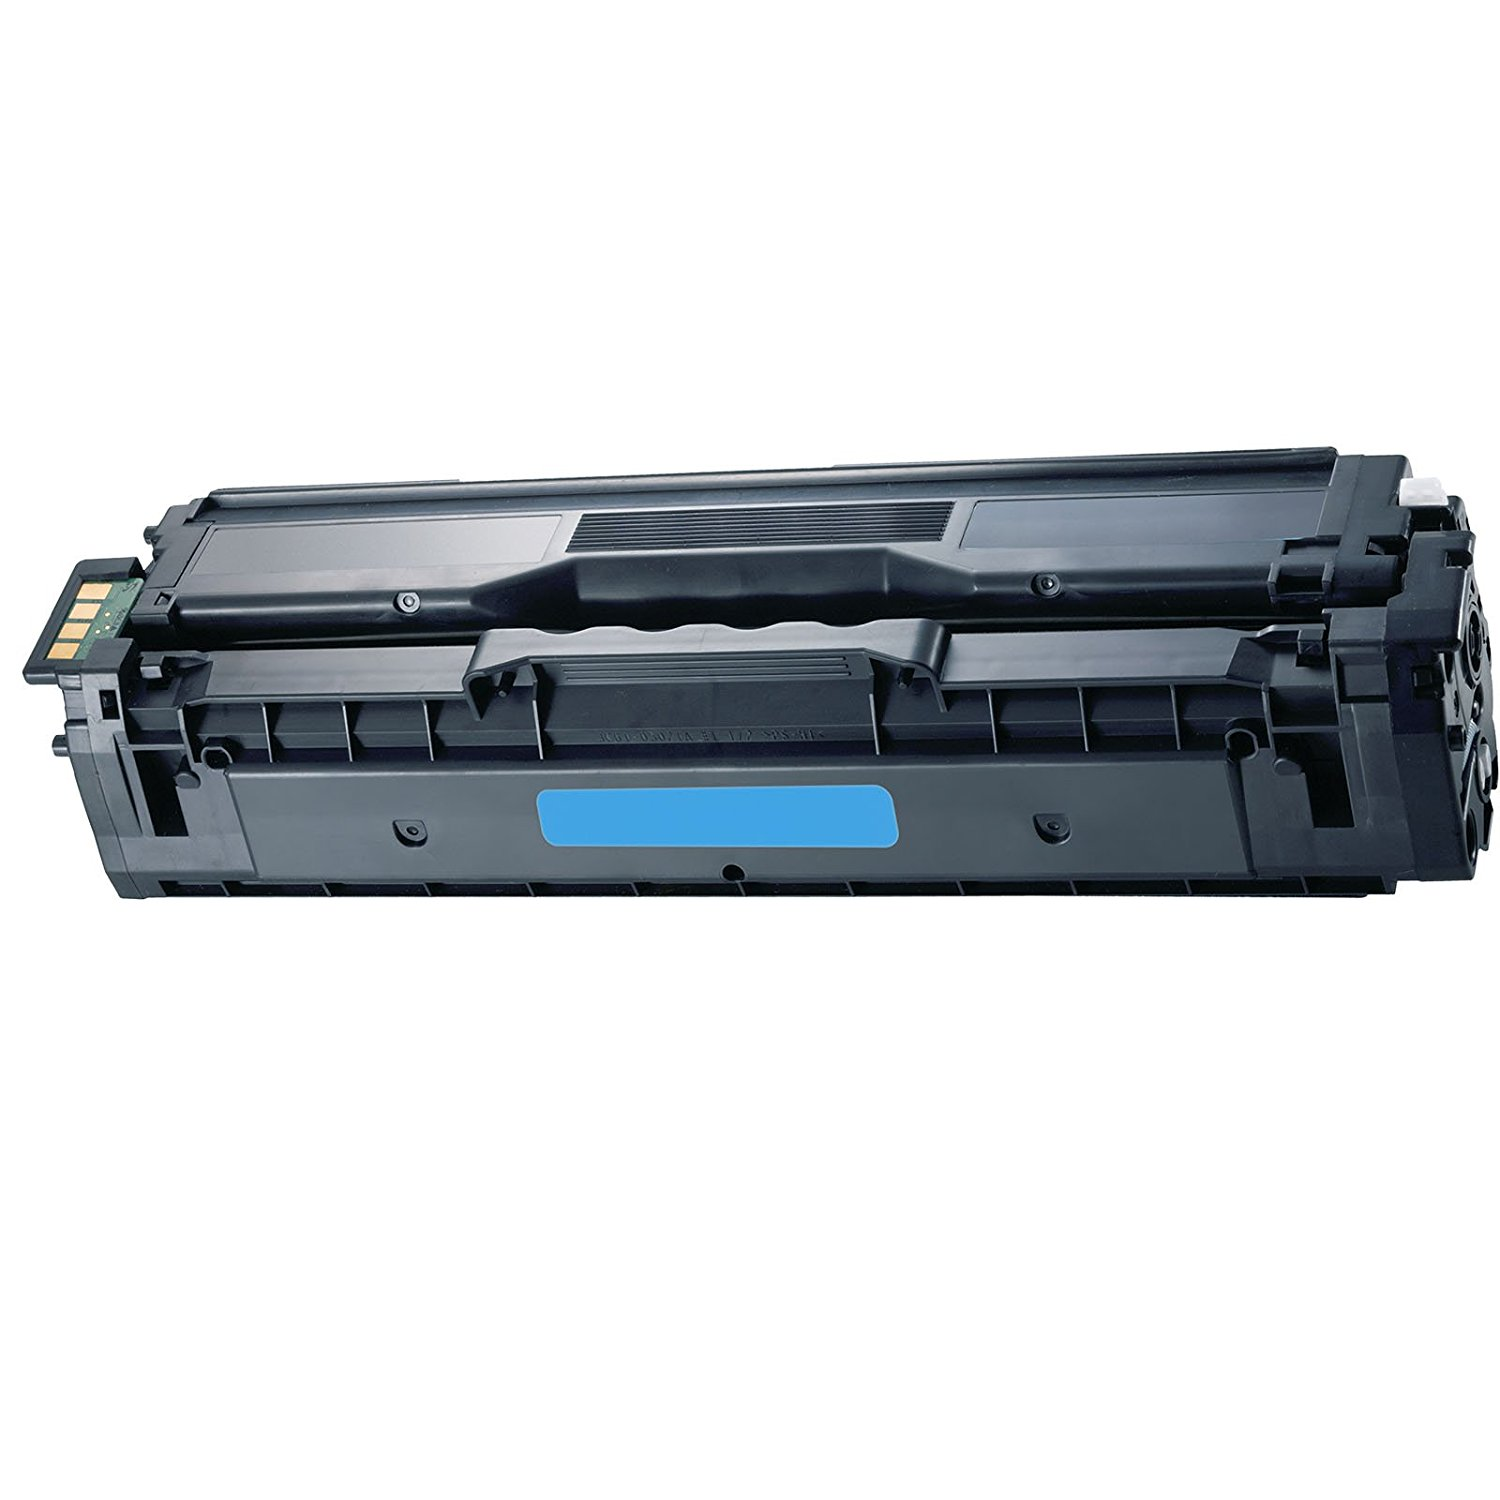 Set of 5 CLT-K504S 504 Toner Cartridges For Samsung SL-C1810W SL-C1860FW CLP-415